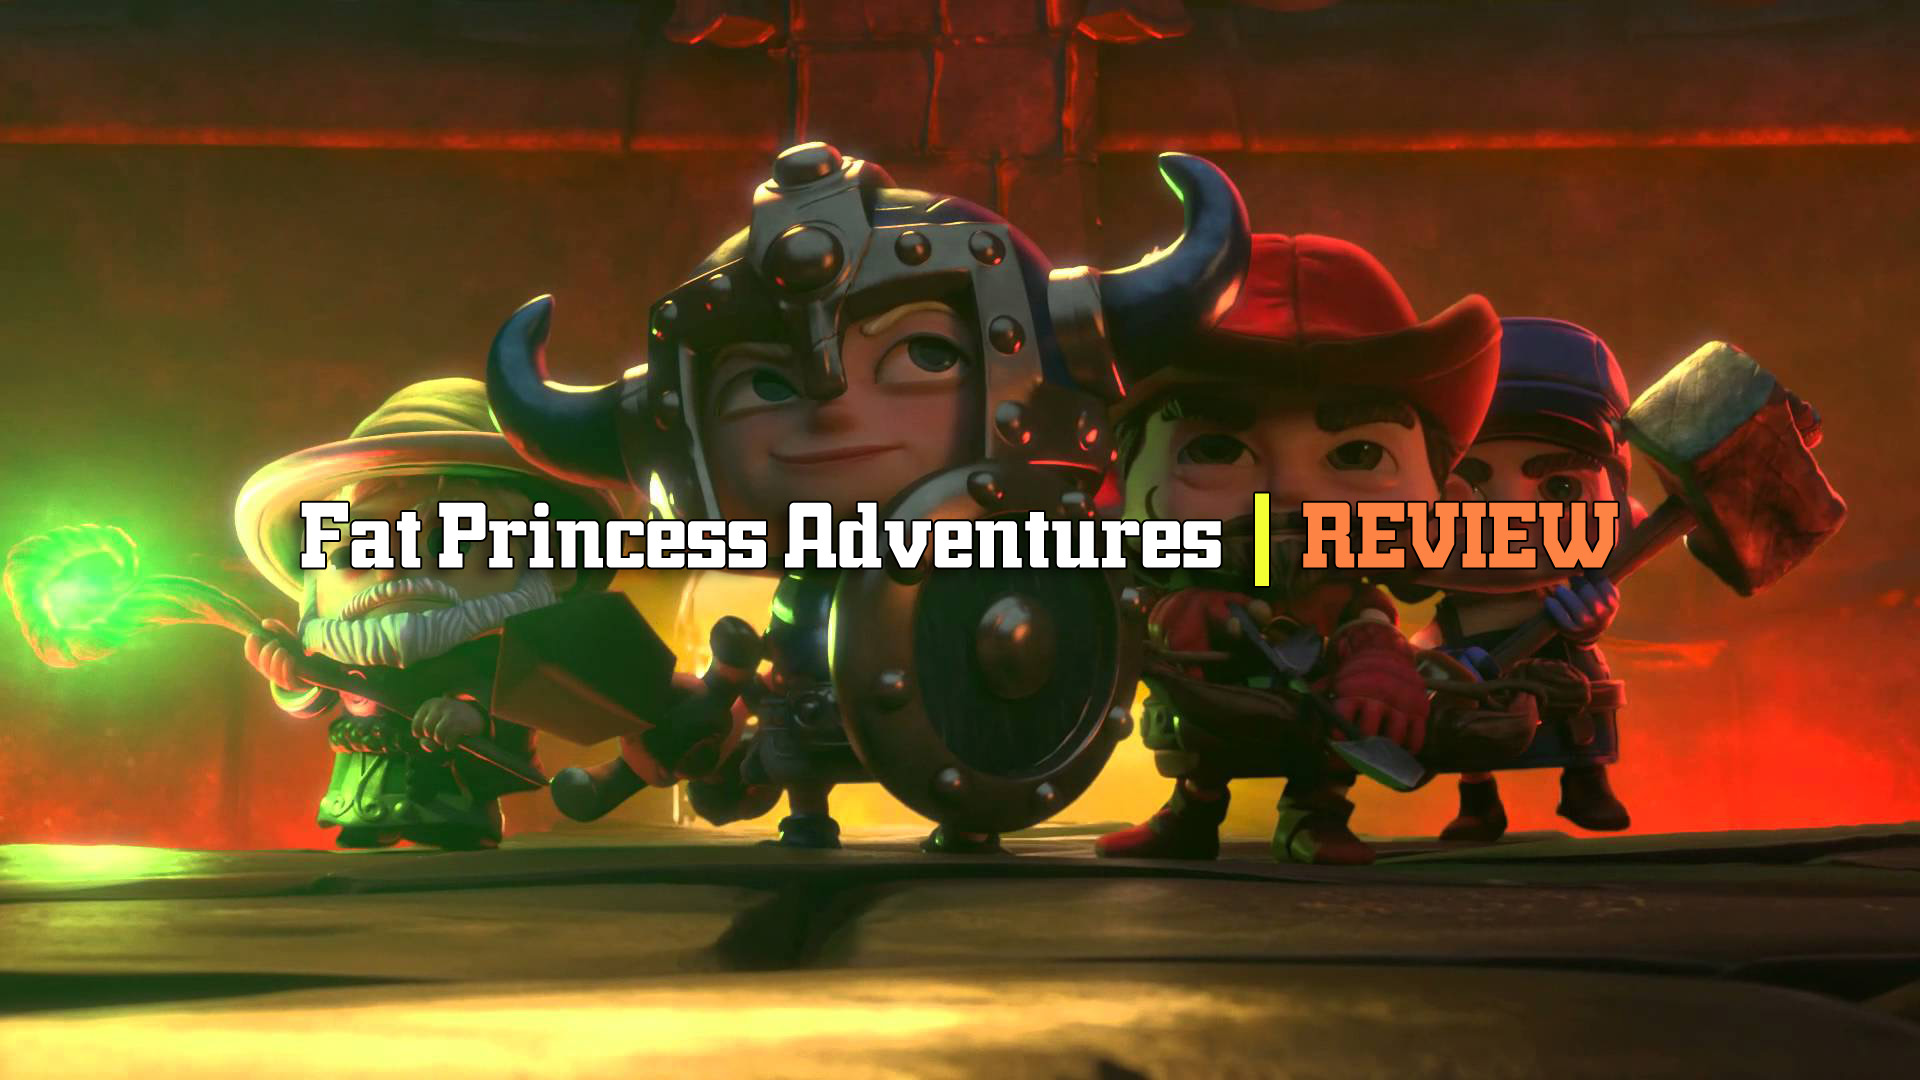 Fat-Princess-Adventures-Review-Cover.jpg